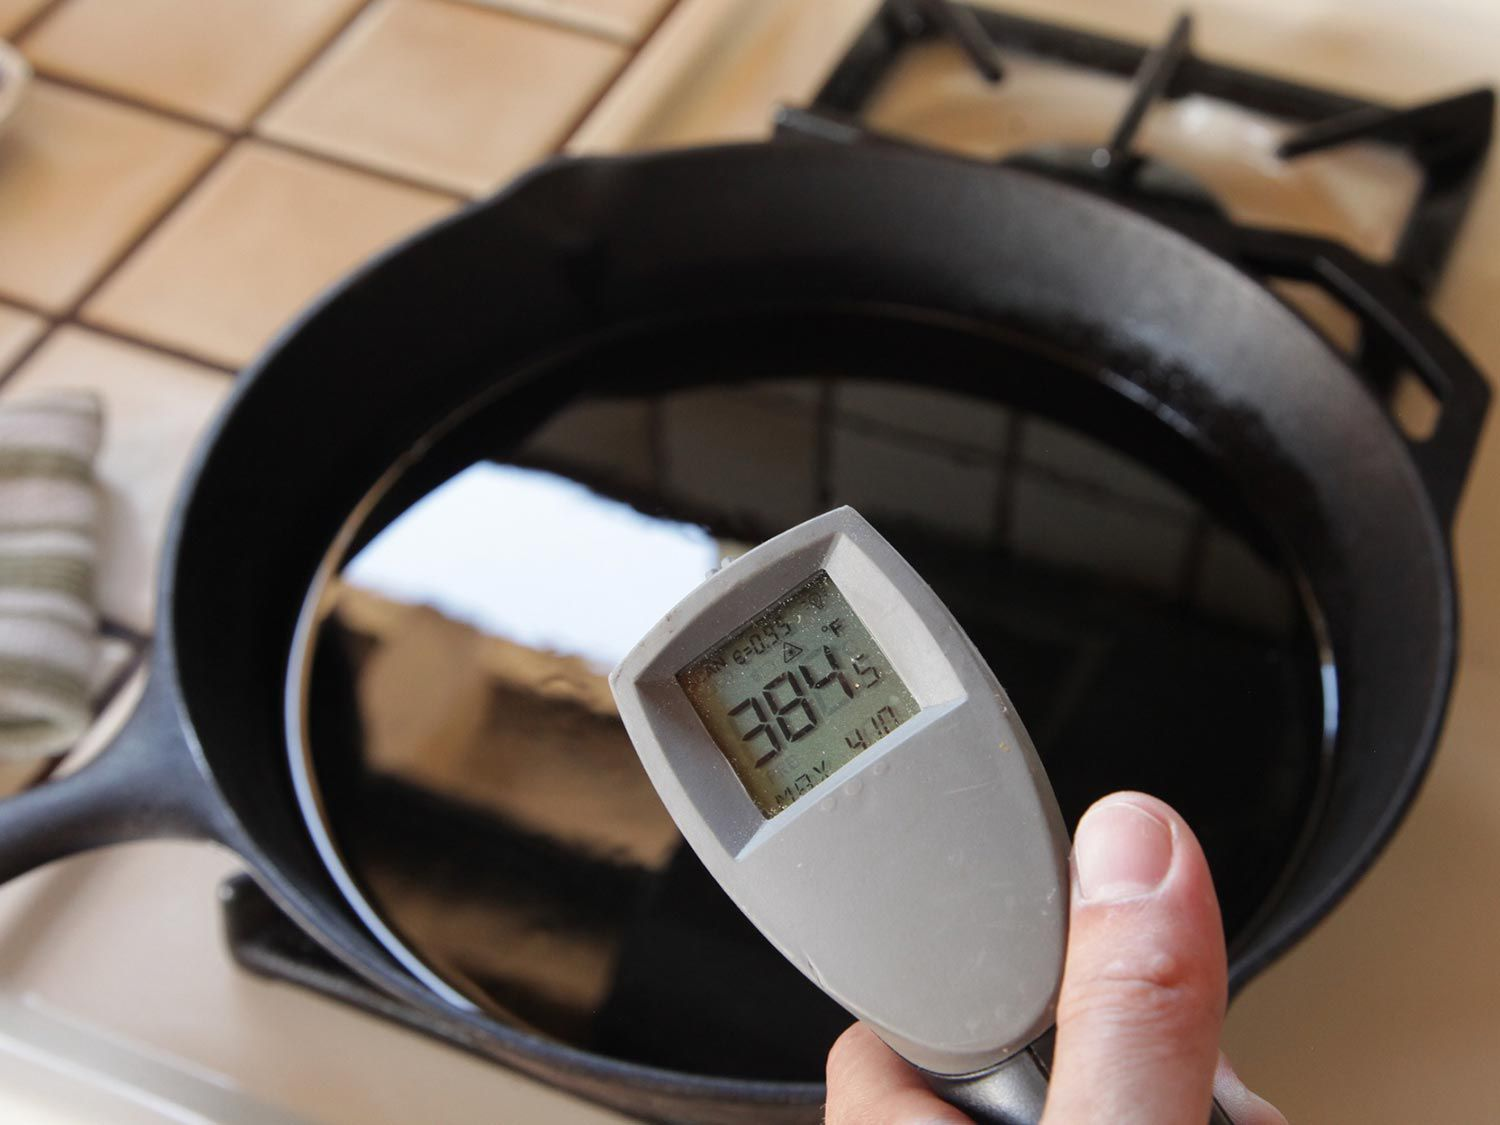 Checking oil temperature with inferred thermometer